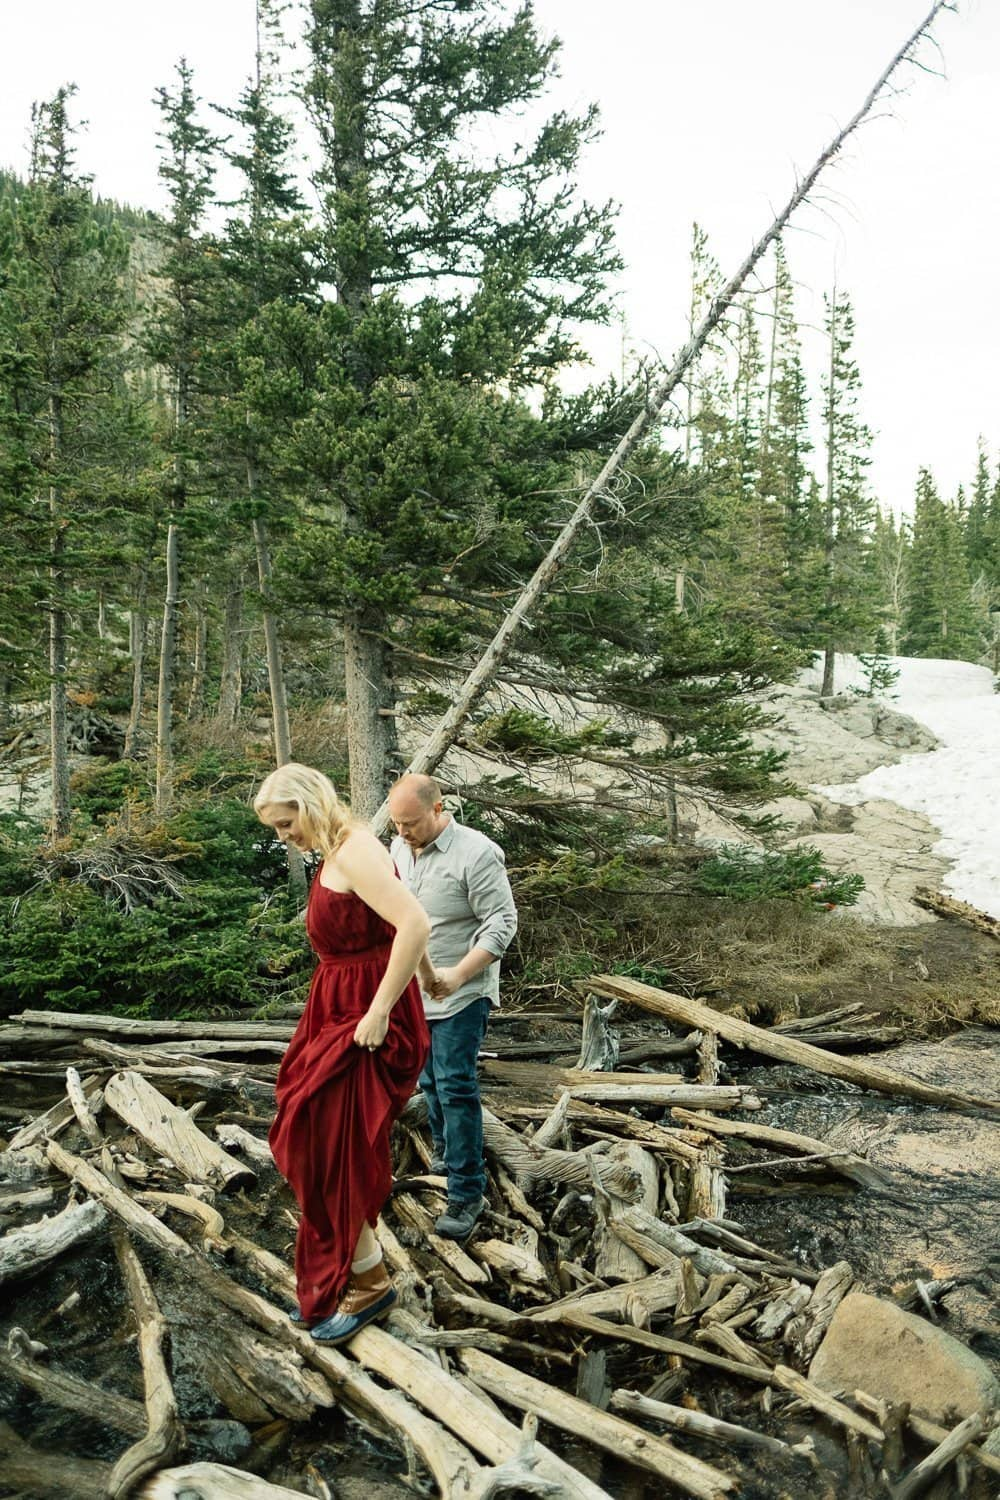 ELOPEMENT ADVENTURE PHOTOGRAPHER|INTIMATE WEDDING PHOTOGRAPHER|ROCKY MOUNTAIN NATIONAL PARK VOWS RENEWAL|HIKING ADVENTURE |COLORADO MOUNTAIN ANNIVERSARY VOWS RENEWAL|ESTES PARK COLORADO| DEVIN + KELLY